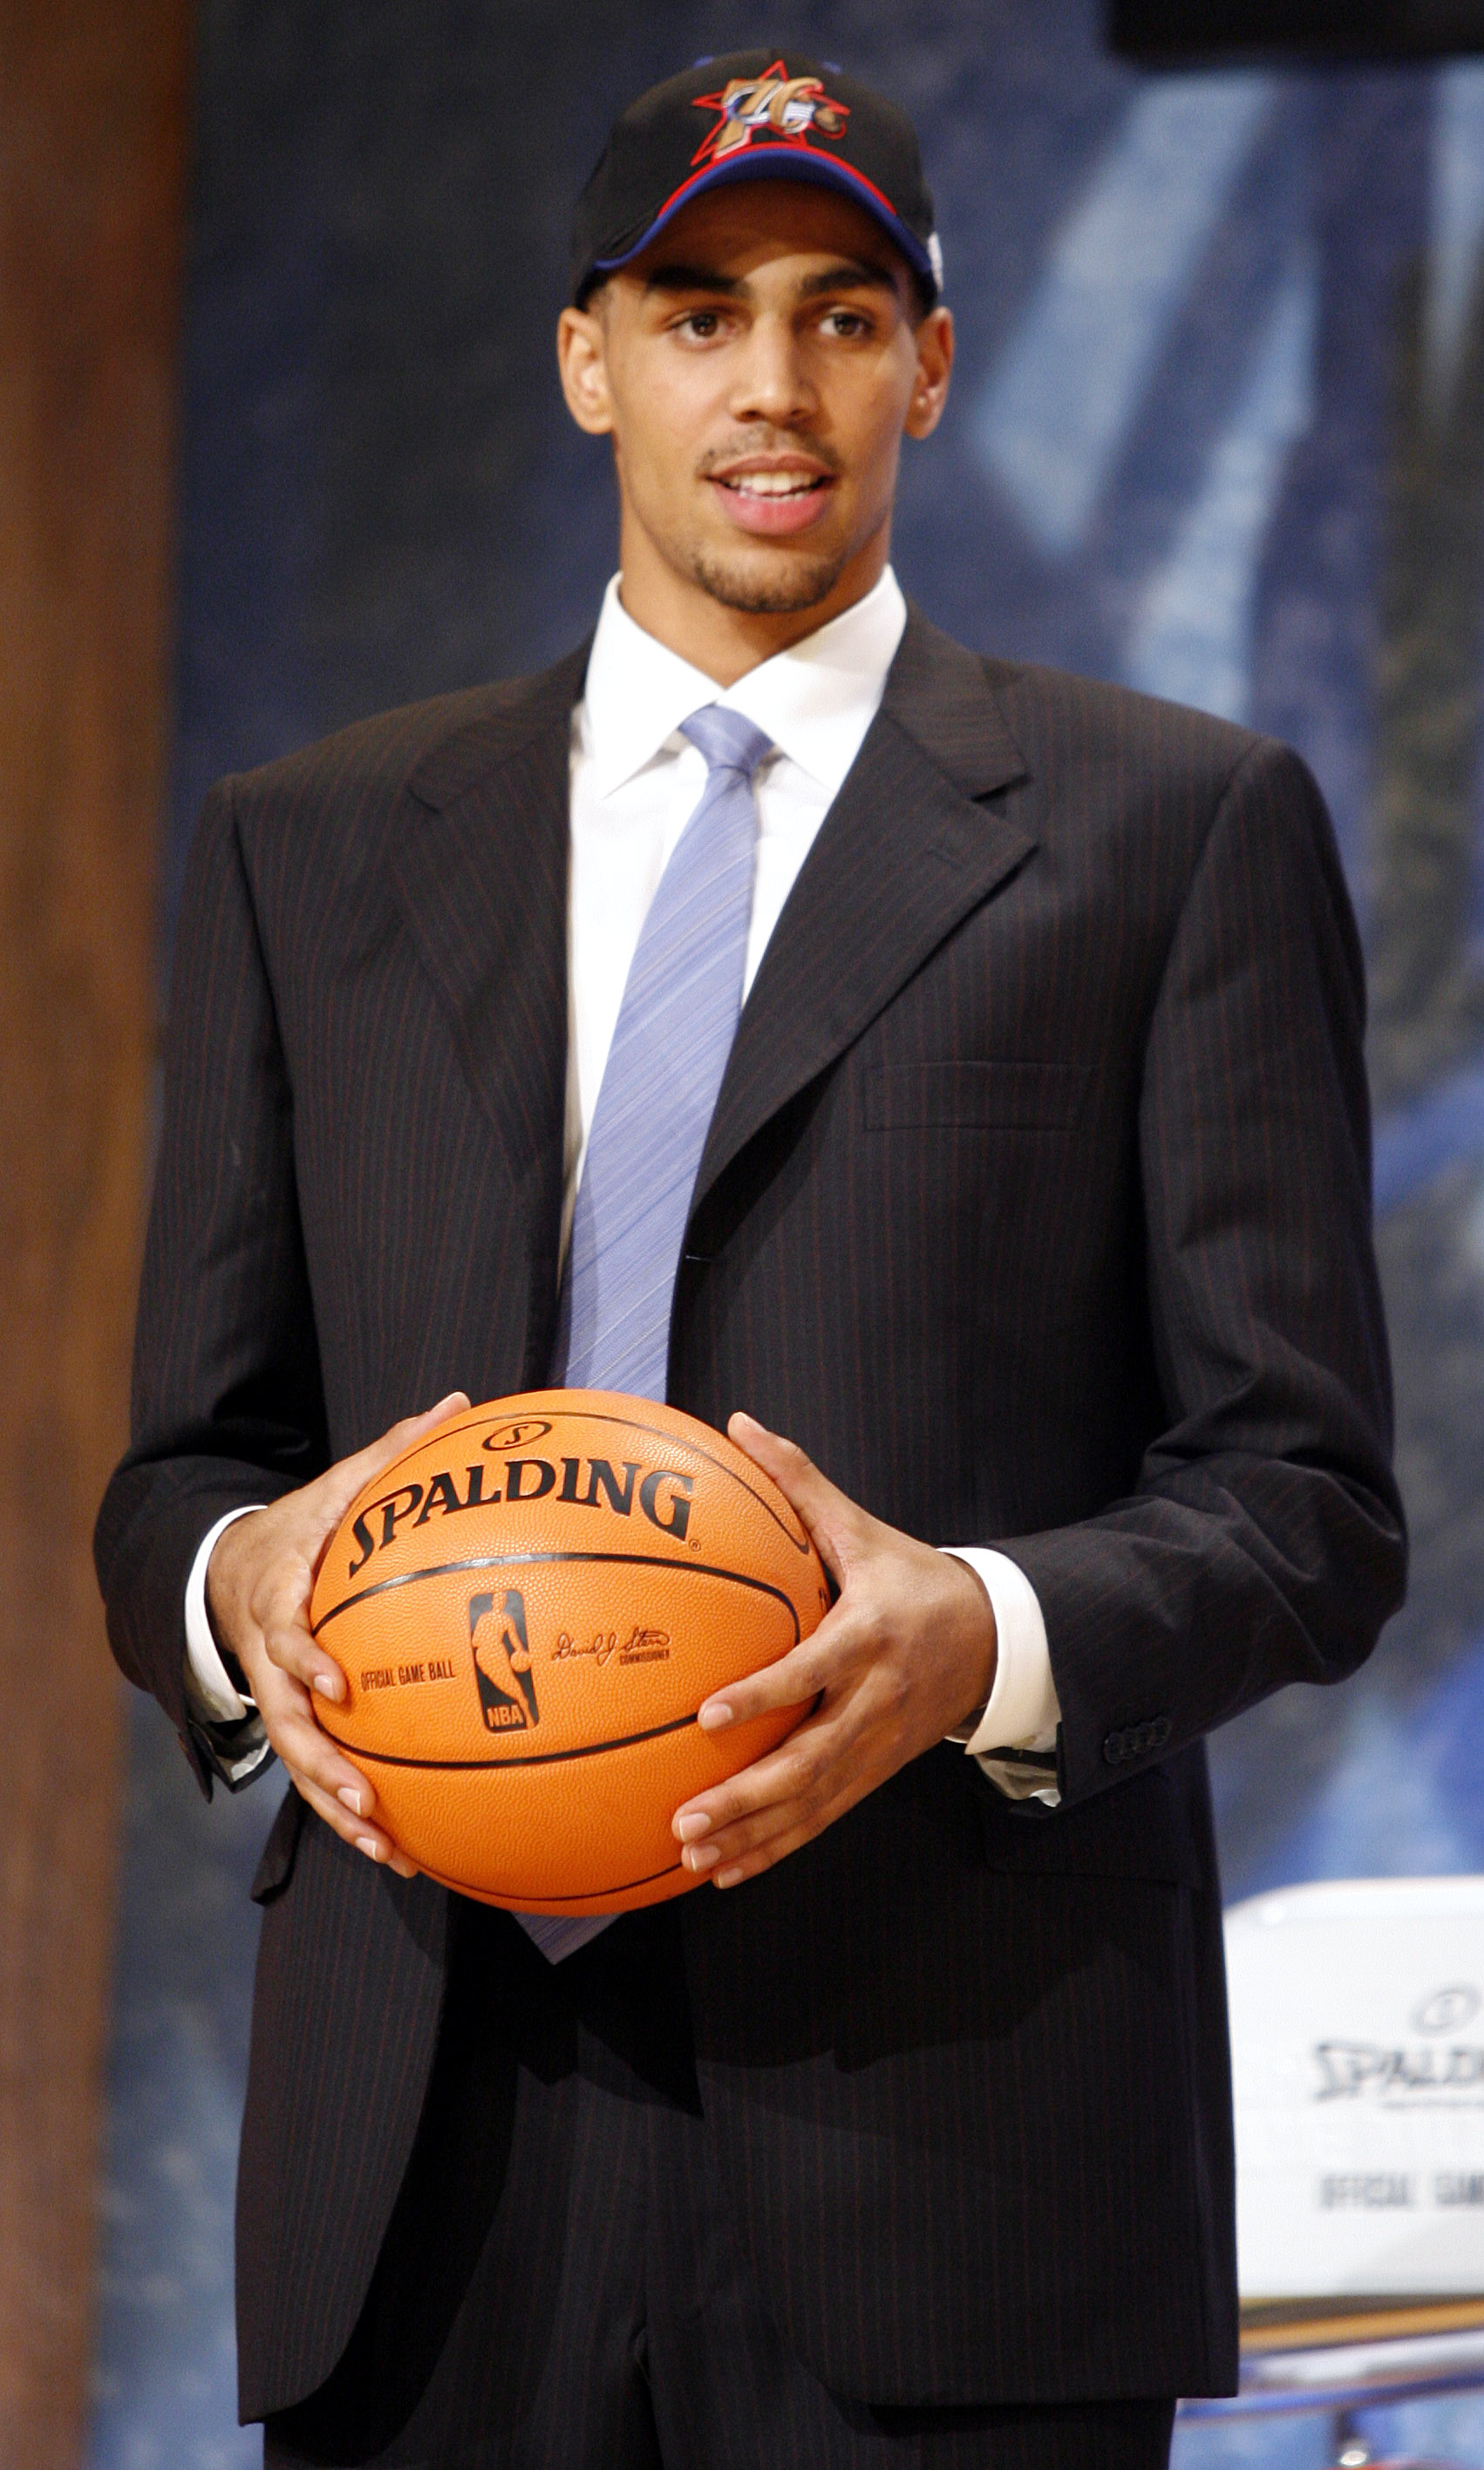 Thabo Sefolosha, a guard of Switzerland, walks to the stage after he was chosen by the Philadelphia 76ers as the 13th overall pick of the 2006 NBA Draft Wednesday June 28, 2006 at Madison Square Garden in New York. Sefolosha was then traded to the Chicago Bulls.